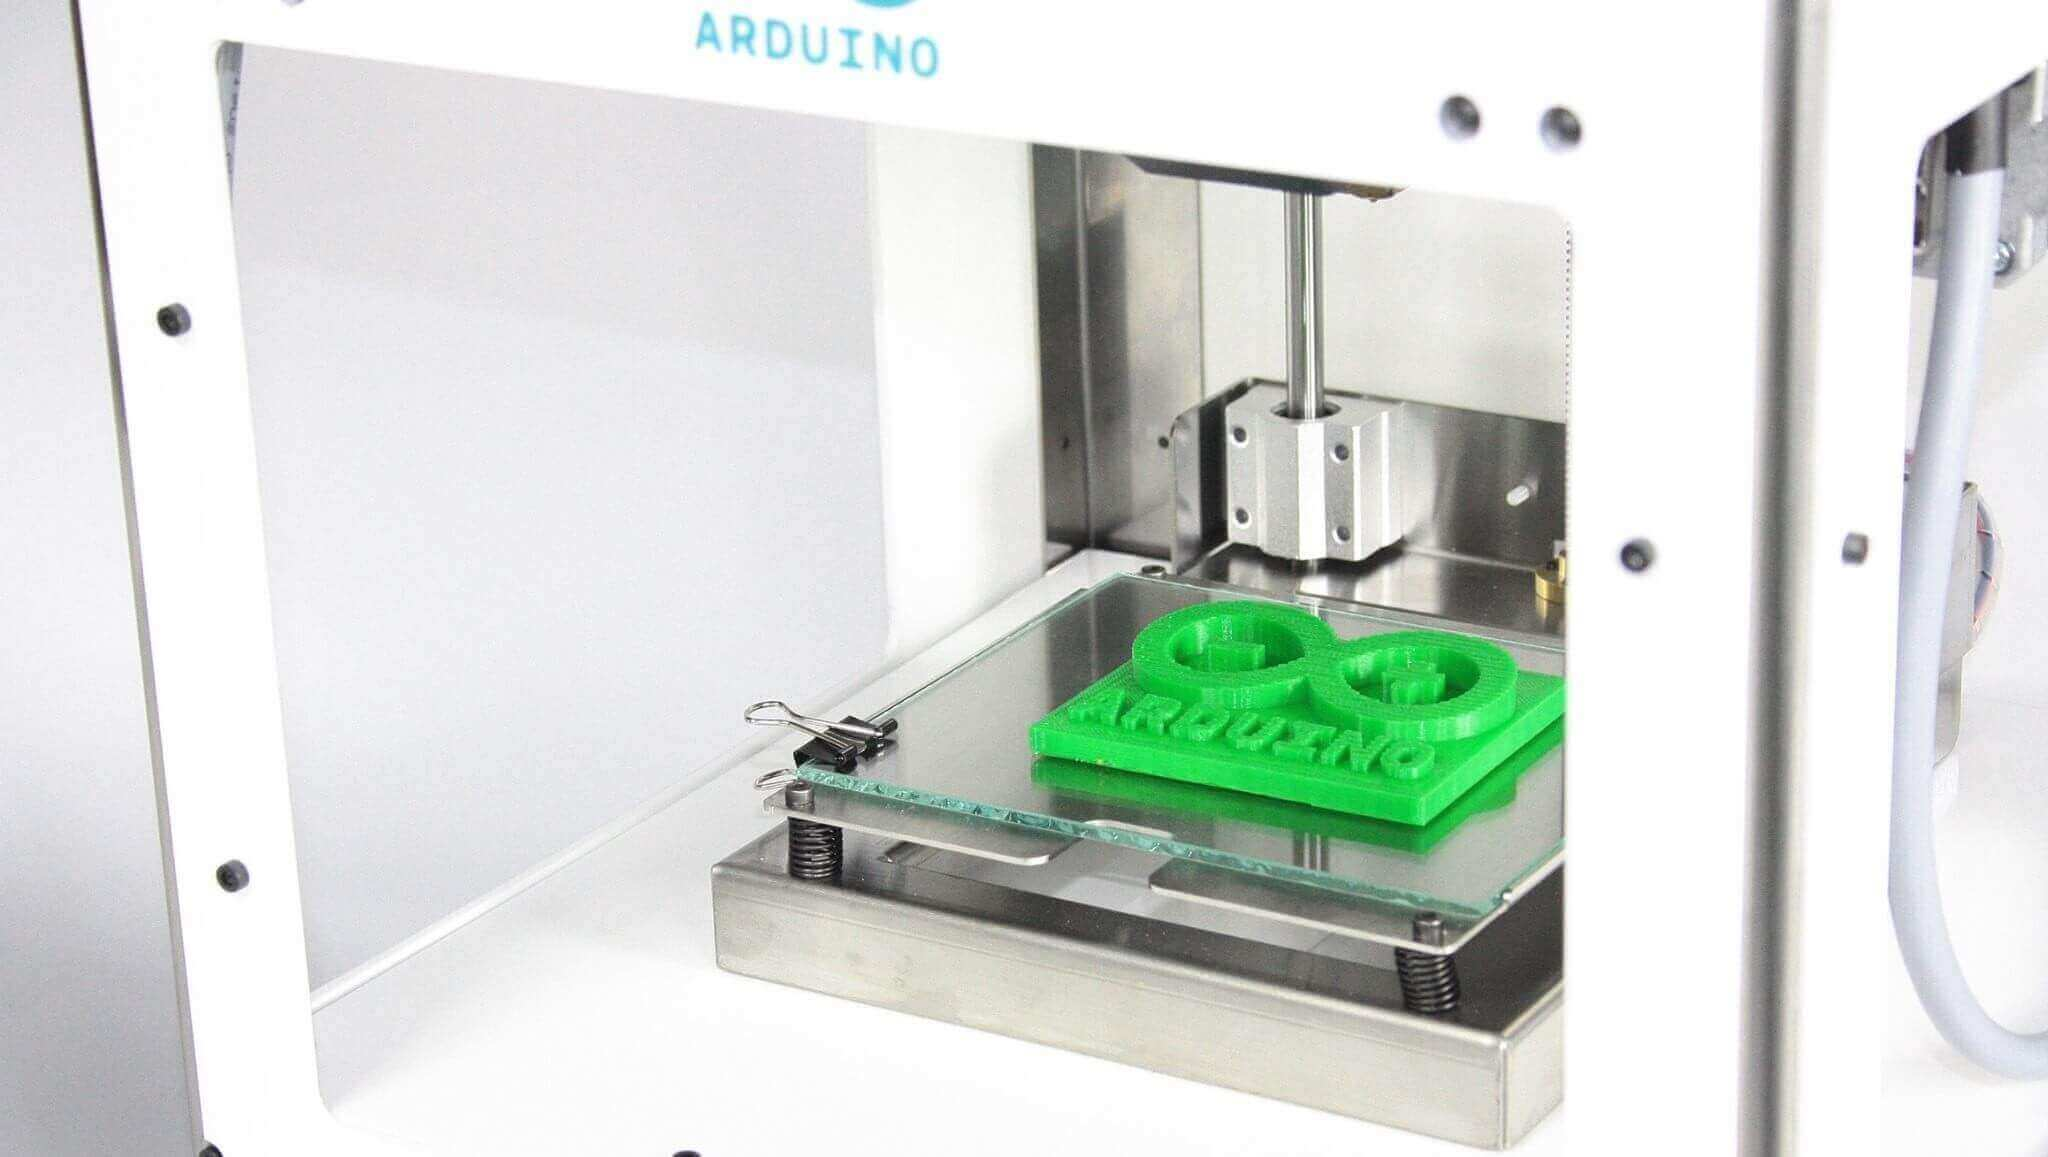 Arduino 3D Printer - 4 DIY 3D Printer Projects to Build Yourself | All3DP